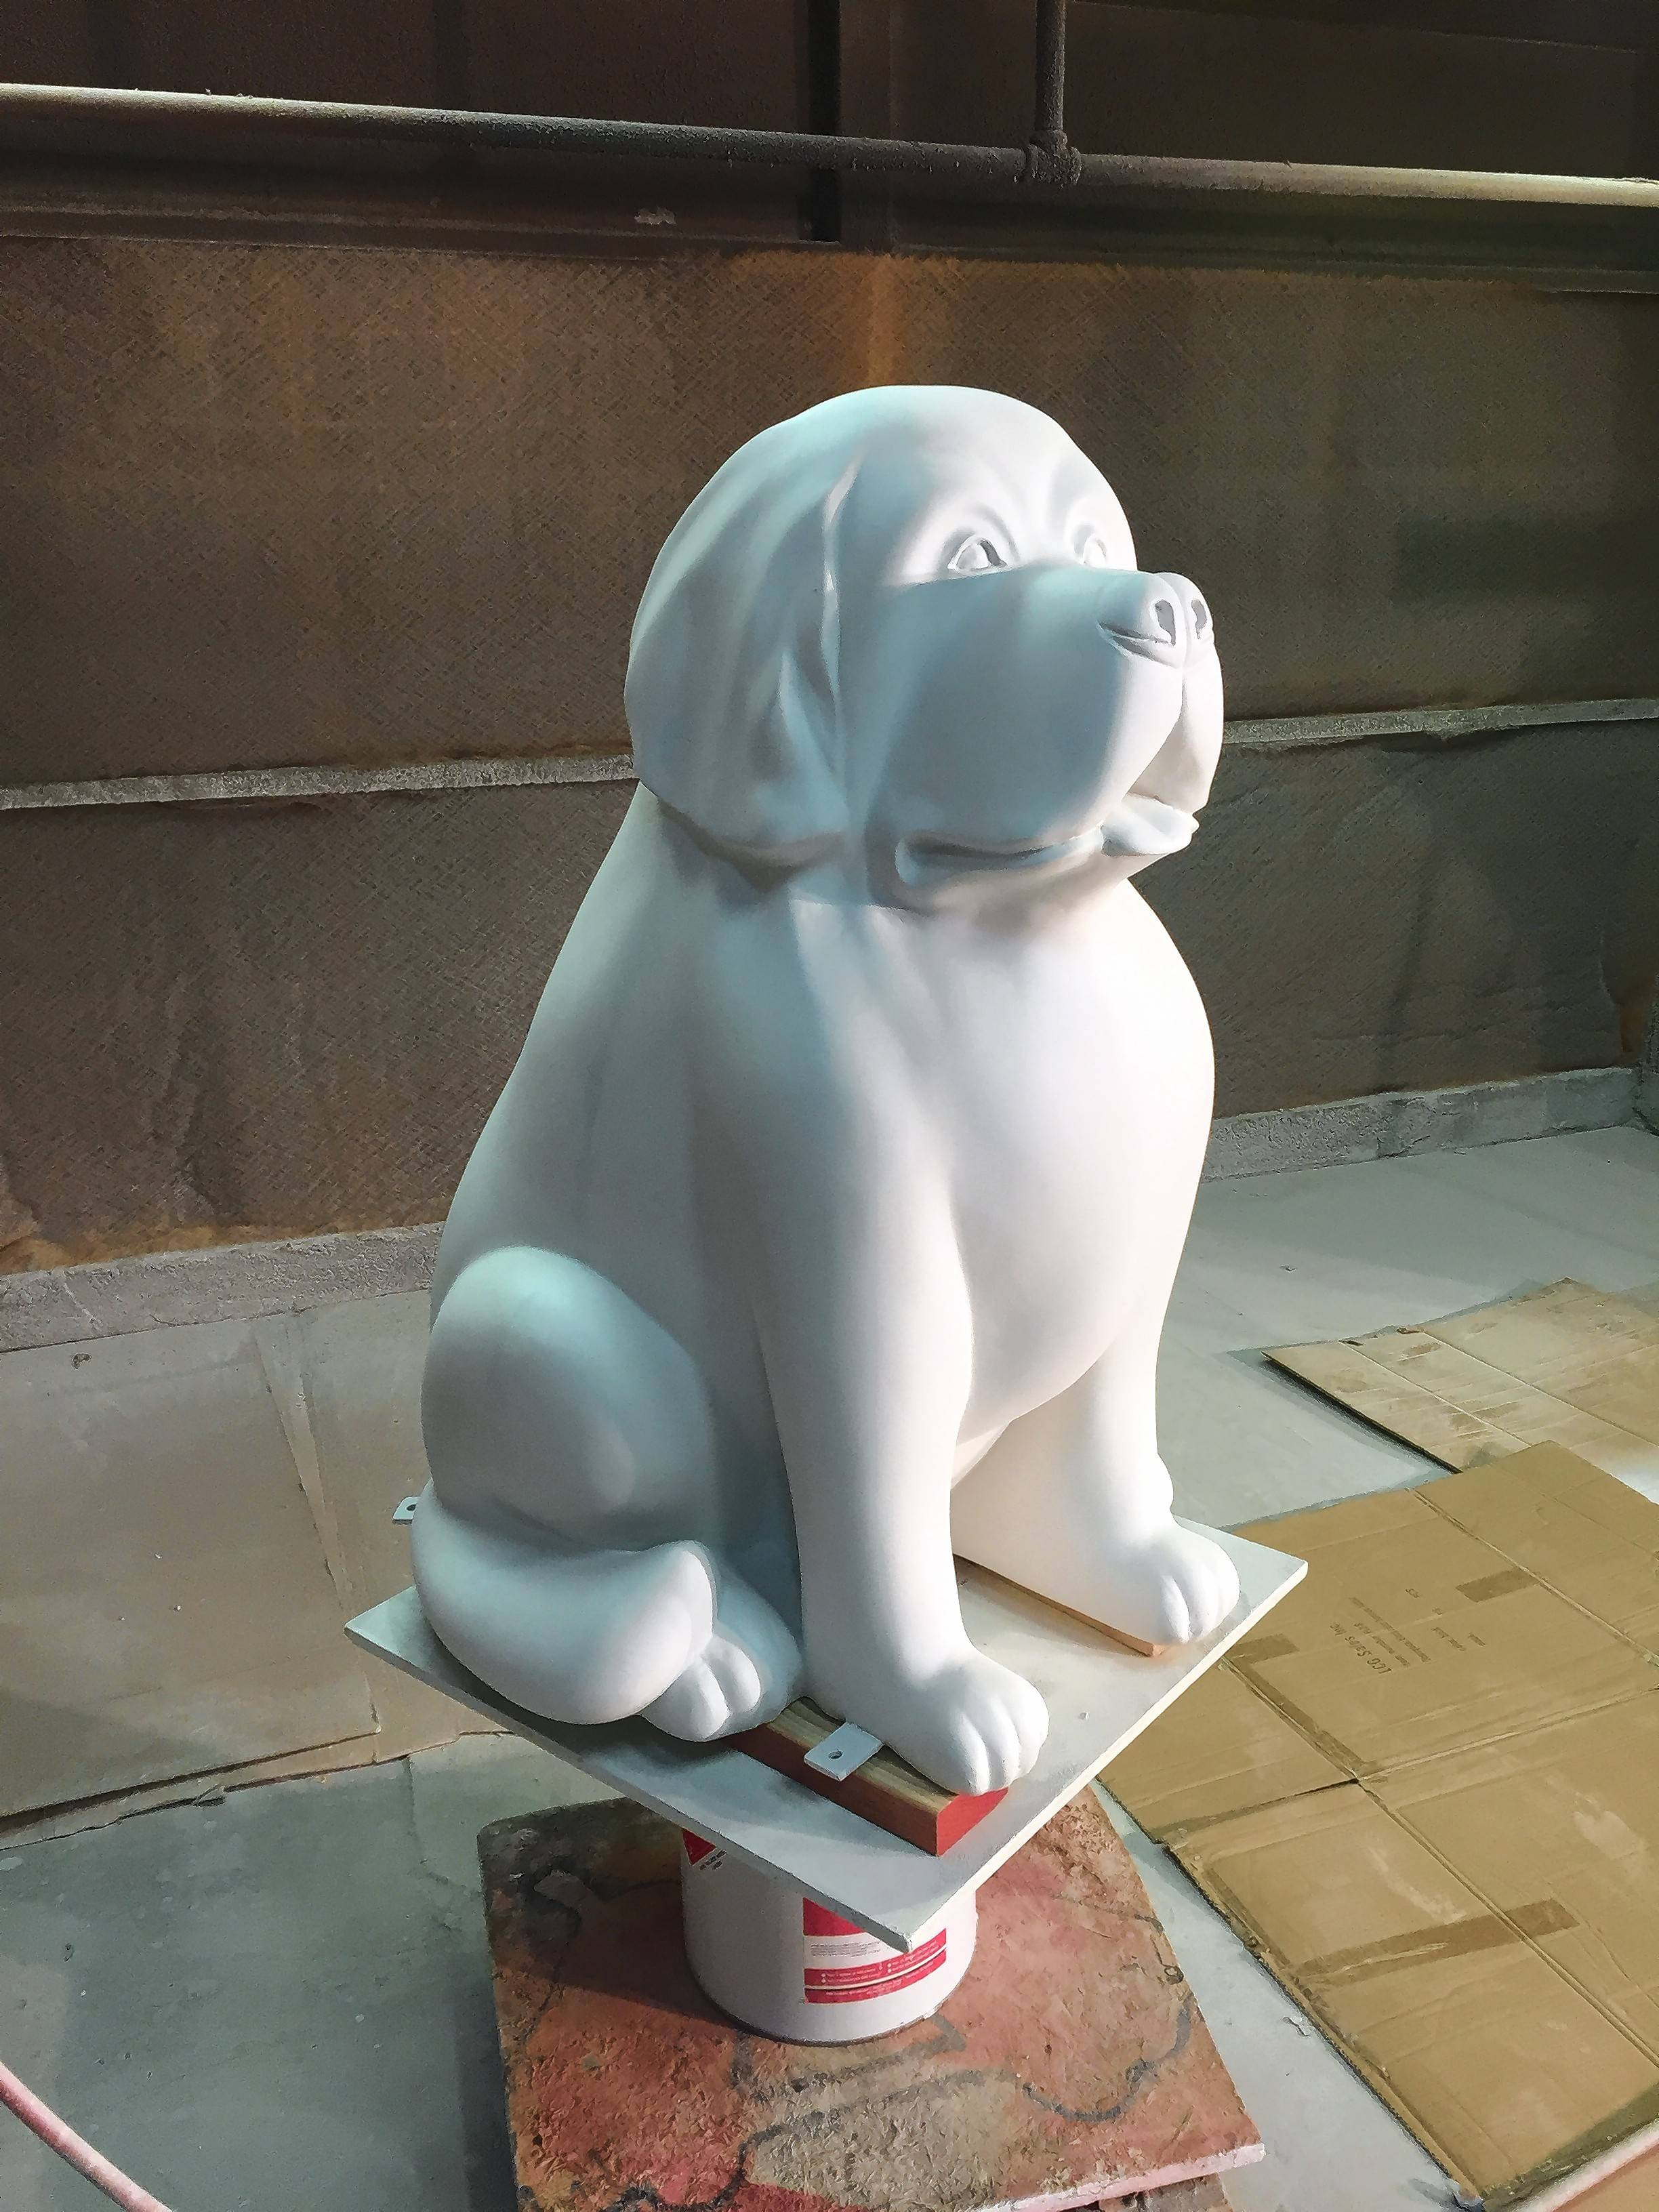 Dog-shaped sculptures will decorate downtown Naperville this summer as part of the Downtown Naperville Alliance's annual summer art project.